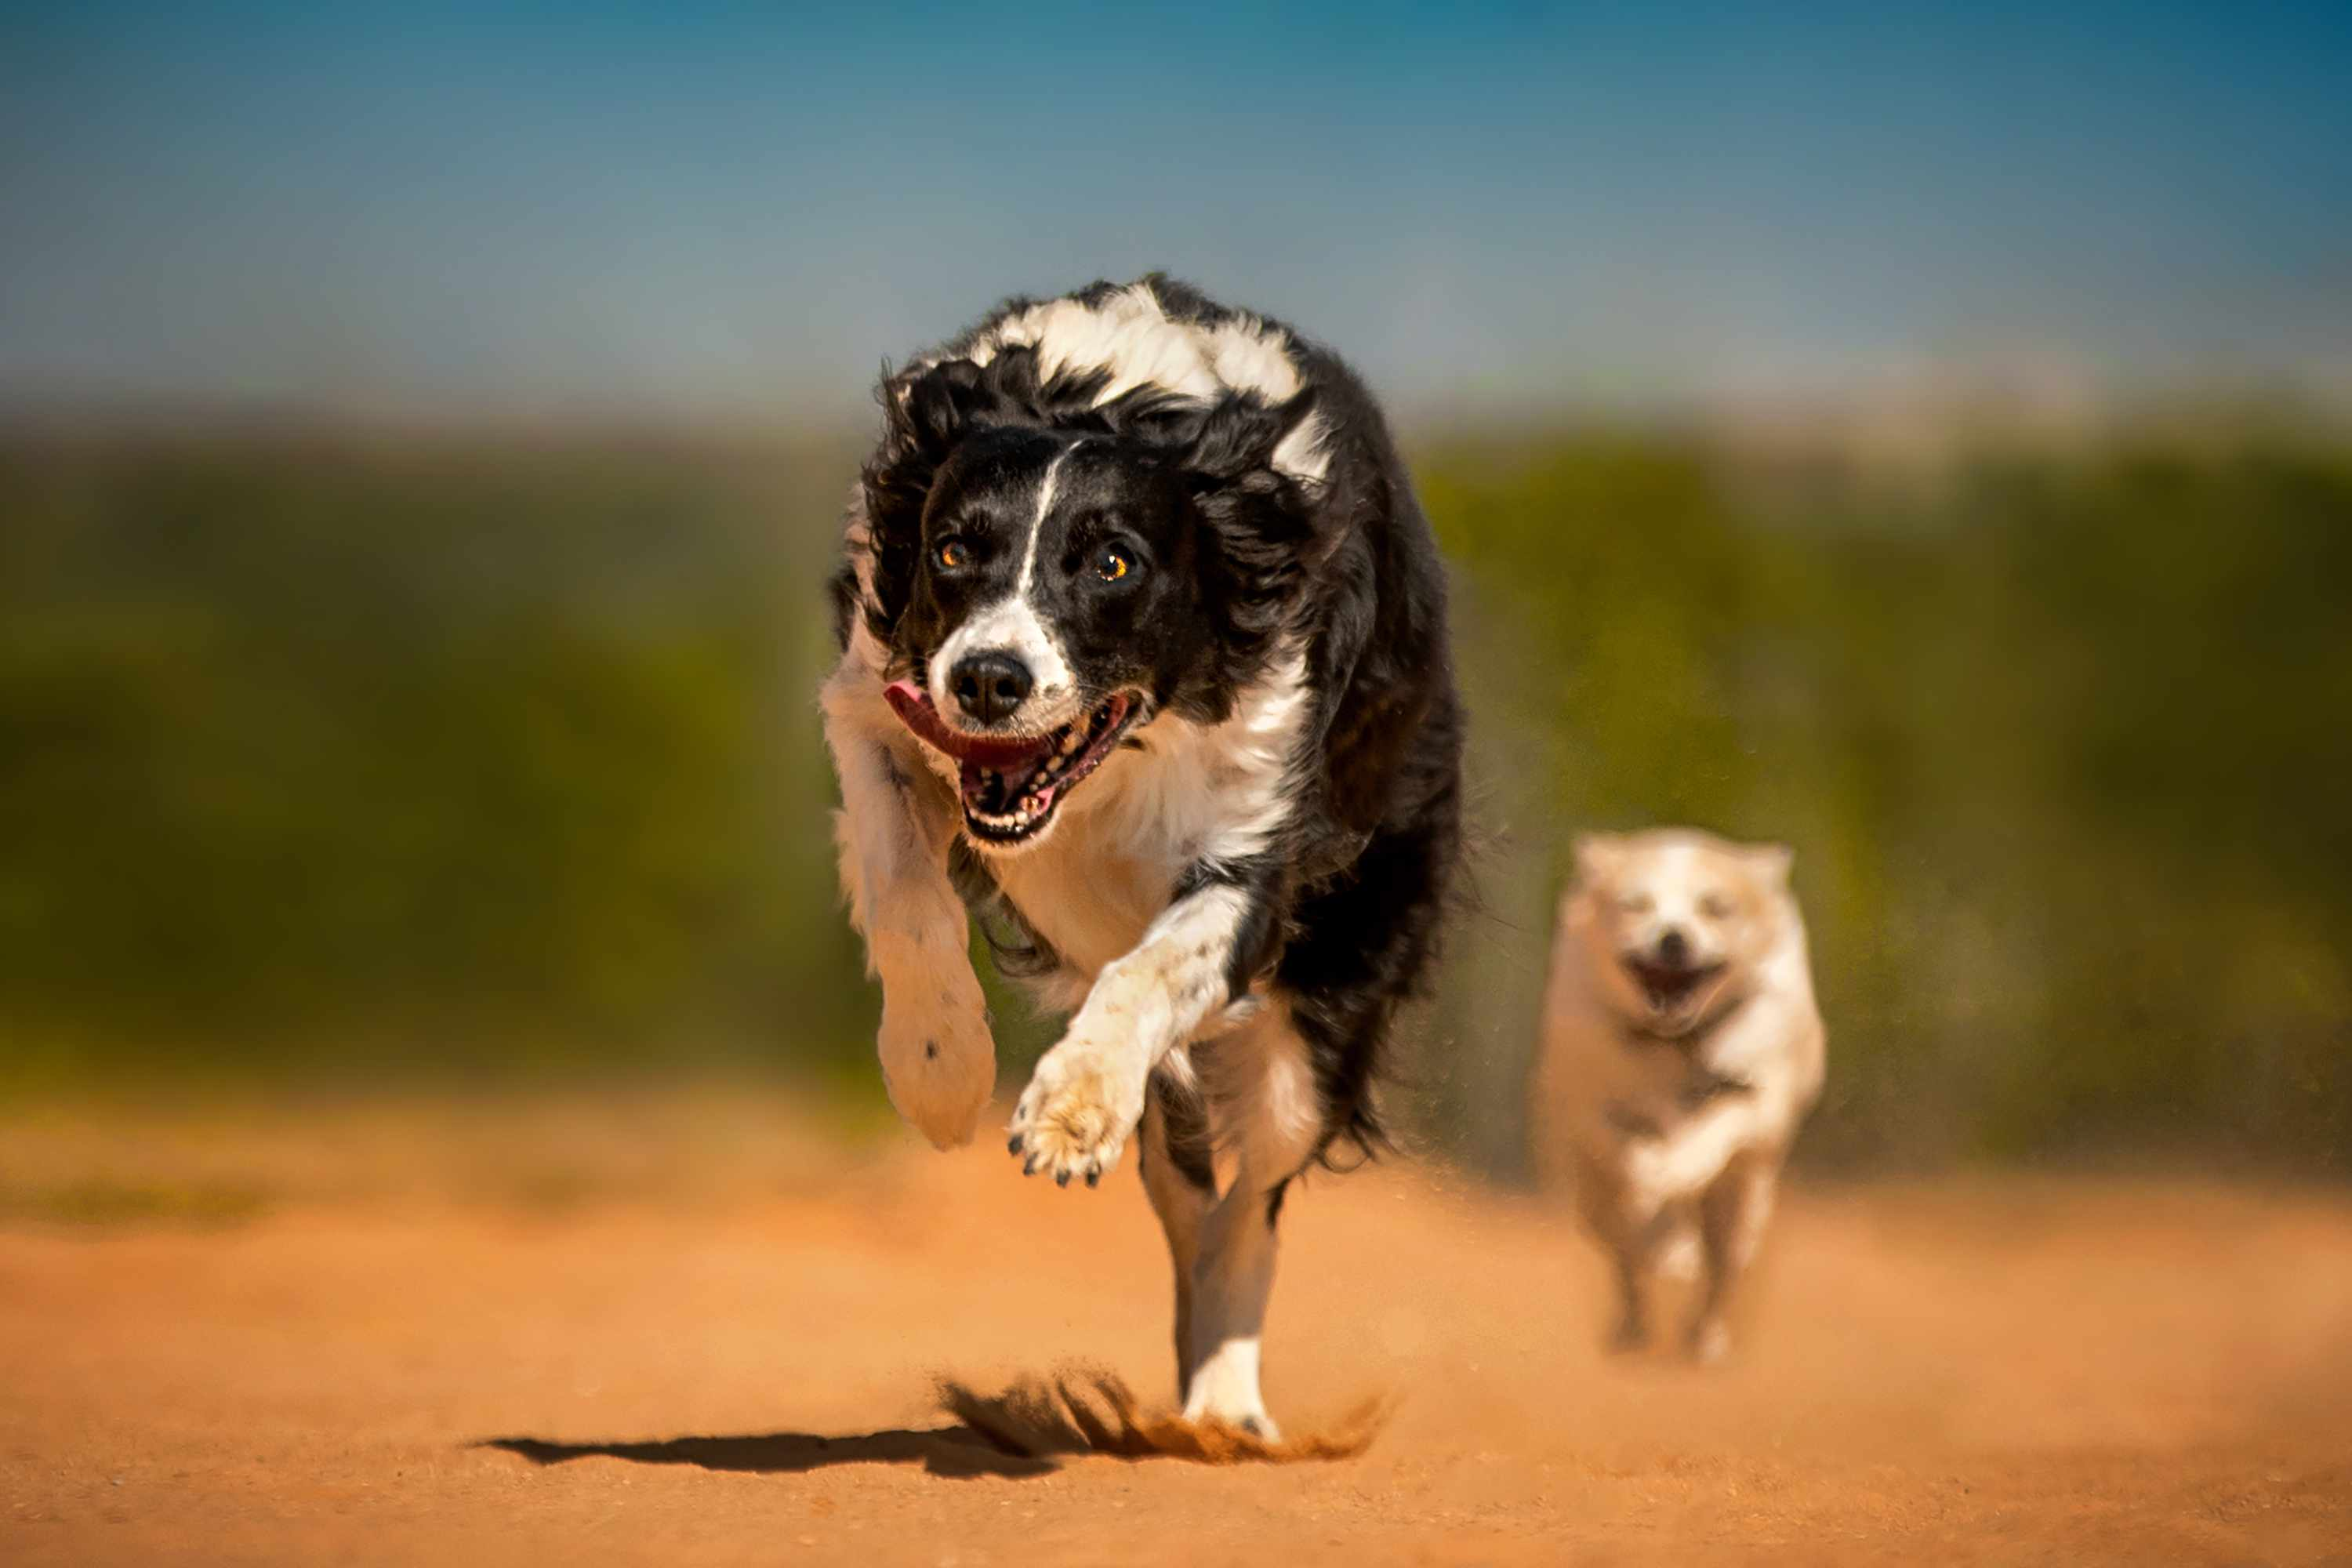 Border Collie running on sand with another dog chasing behind